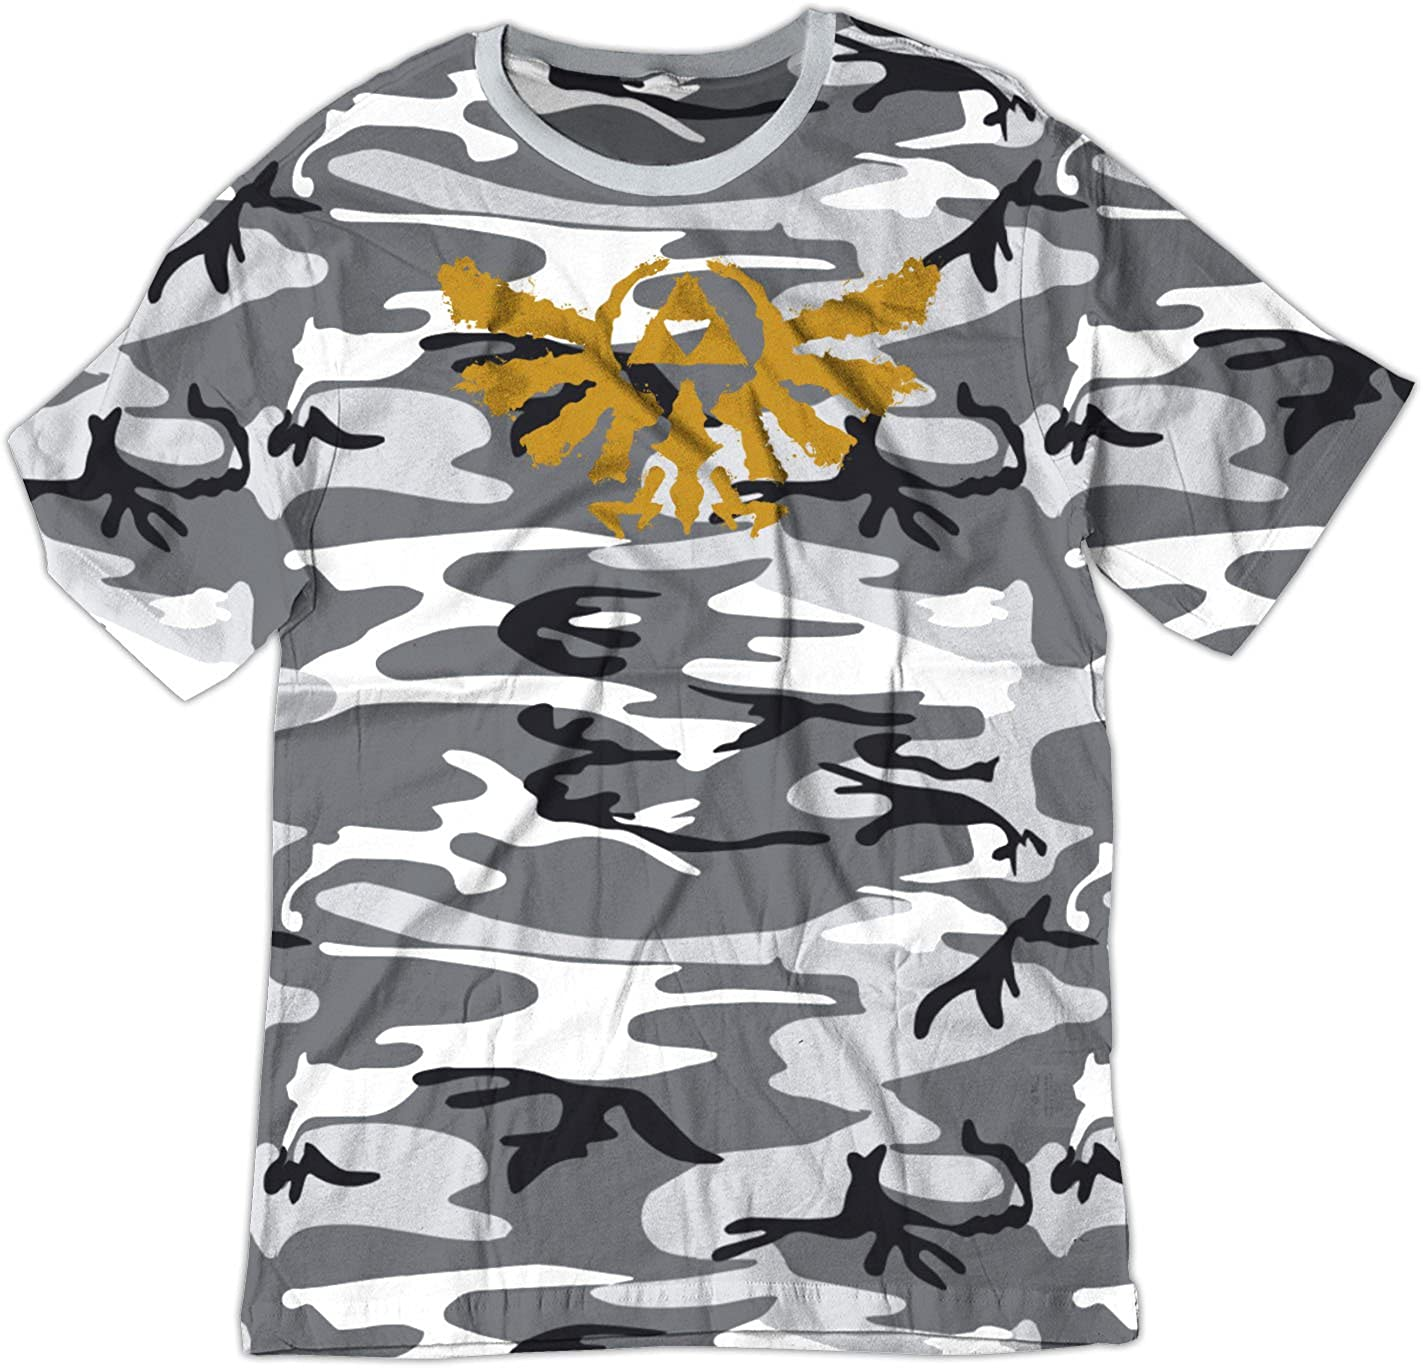 BSW YOUTH Rorschach Zelda Triforce The Golden Power Shirt 1246-1Y